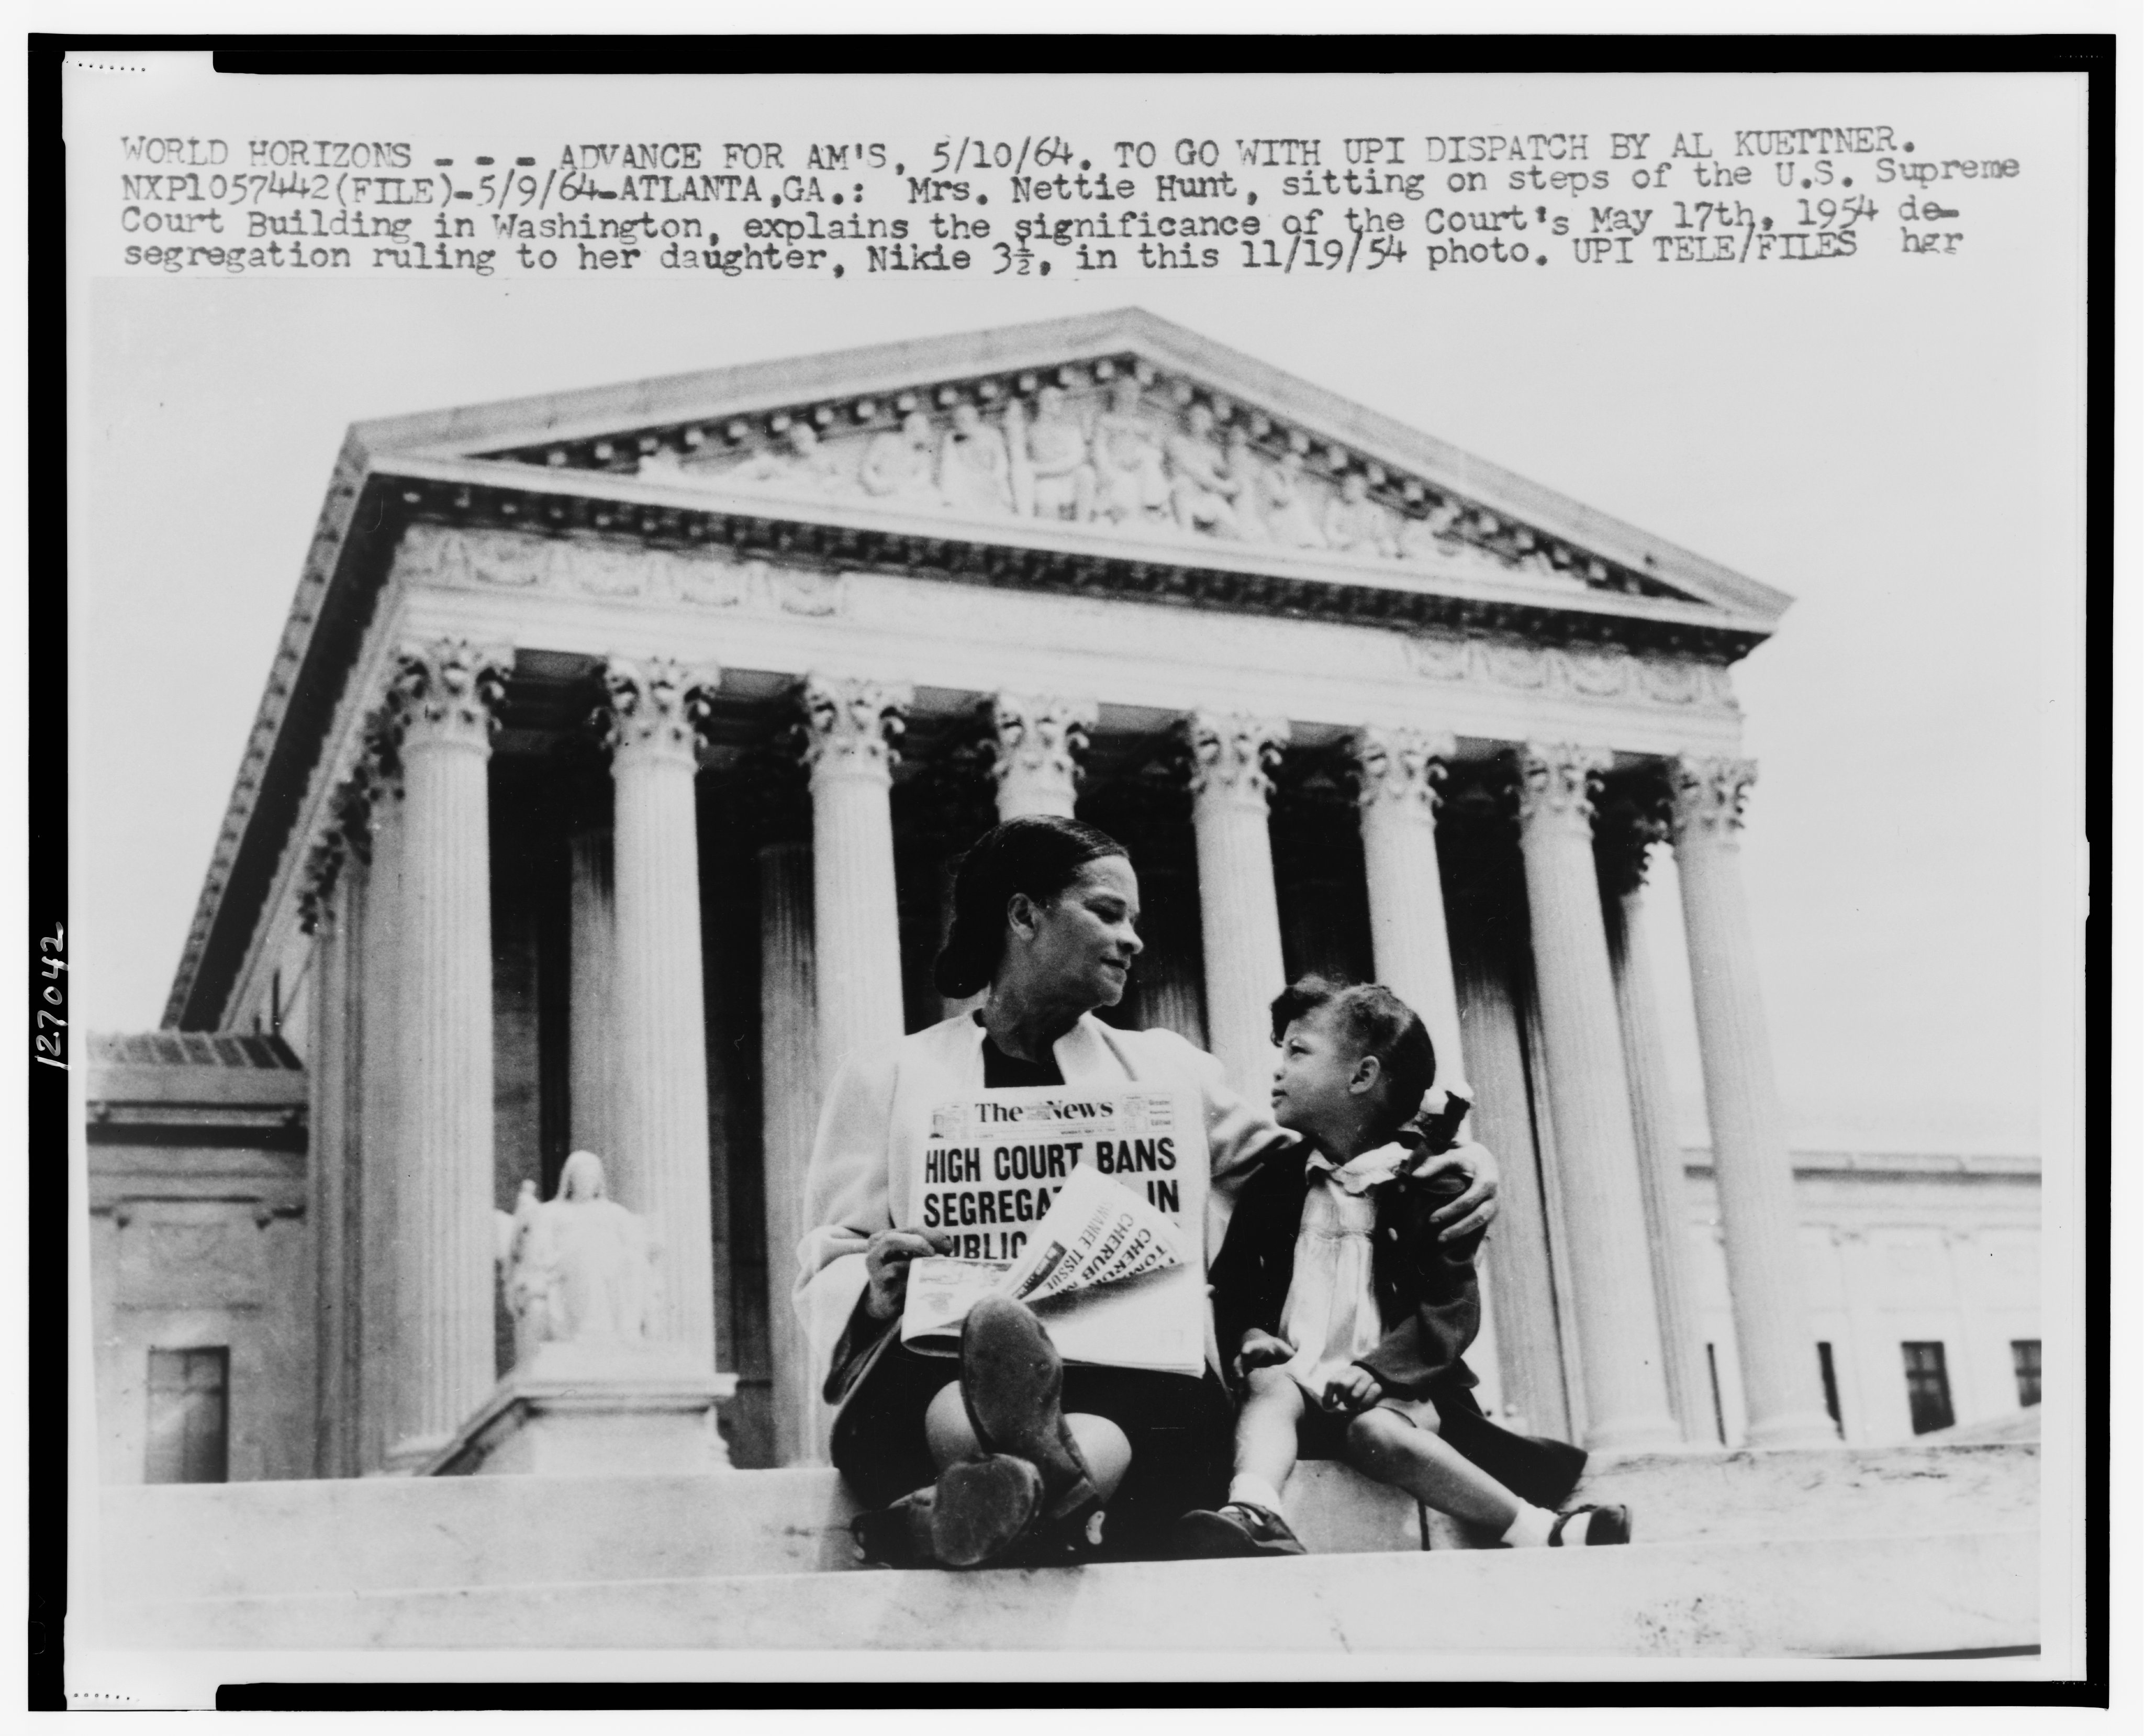 Mrs. Nettie Hunt, sitting on steps of Supreme Court holding newspaper, explaining to her daughter Nikkie the meaning of the Supreme Courts decision banning school segregation, 1954. United Press International telephoto. Reproduced from the Collections of the LIBRARY OF CONGRESS.